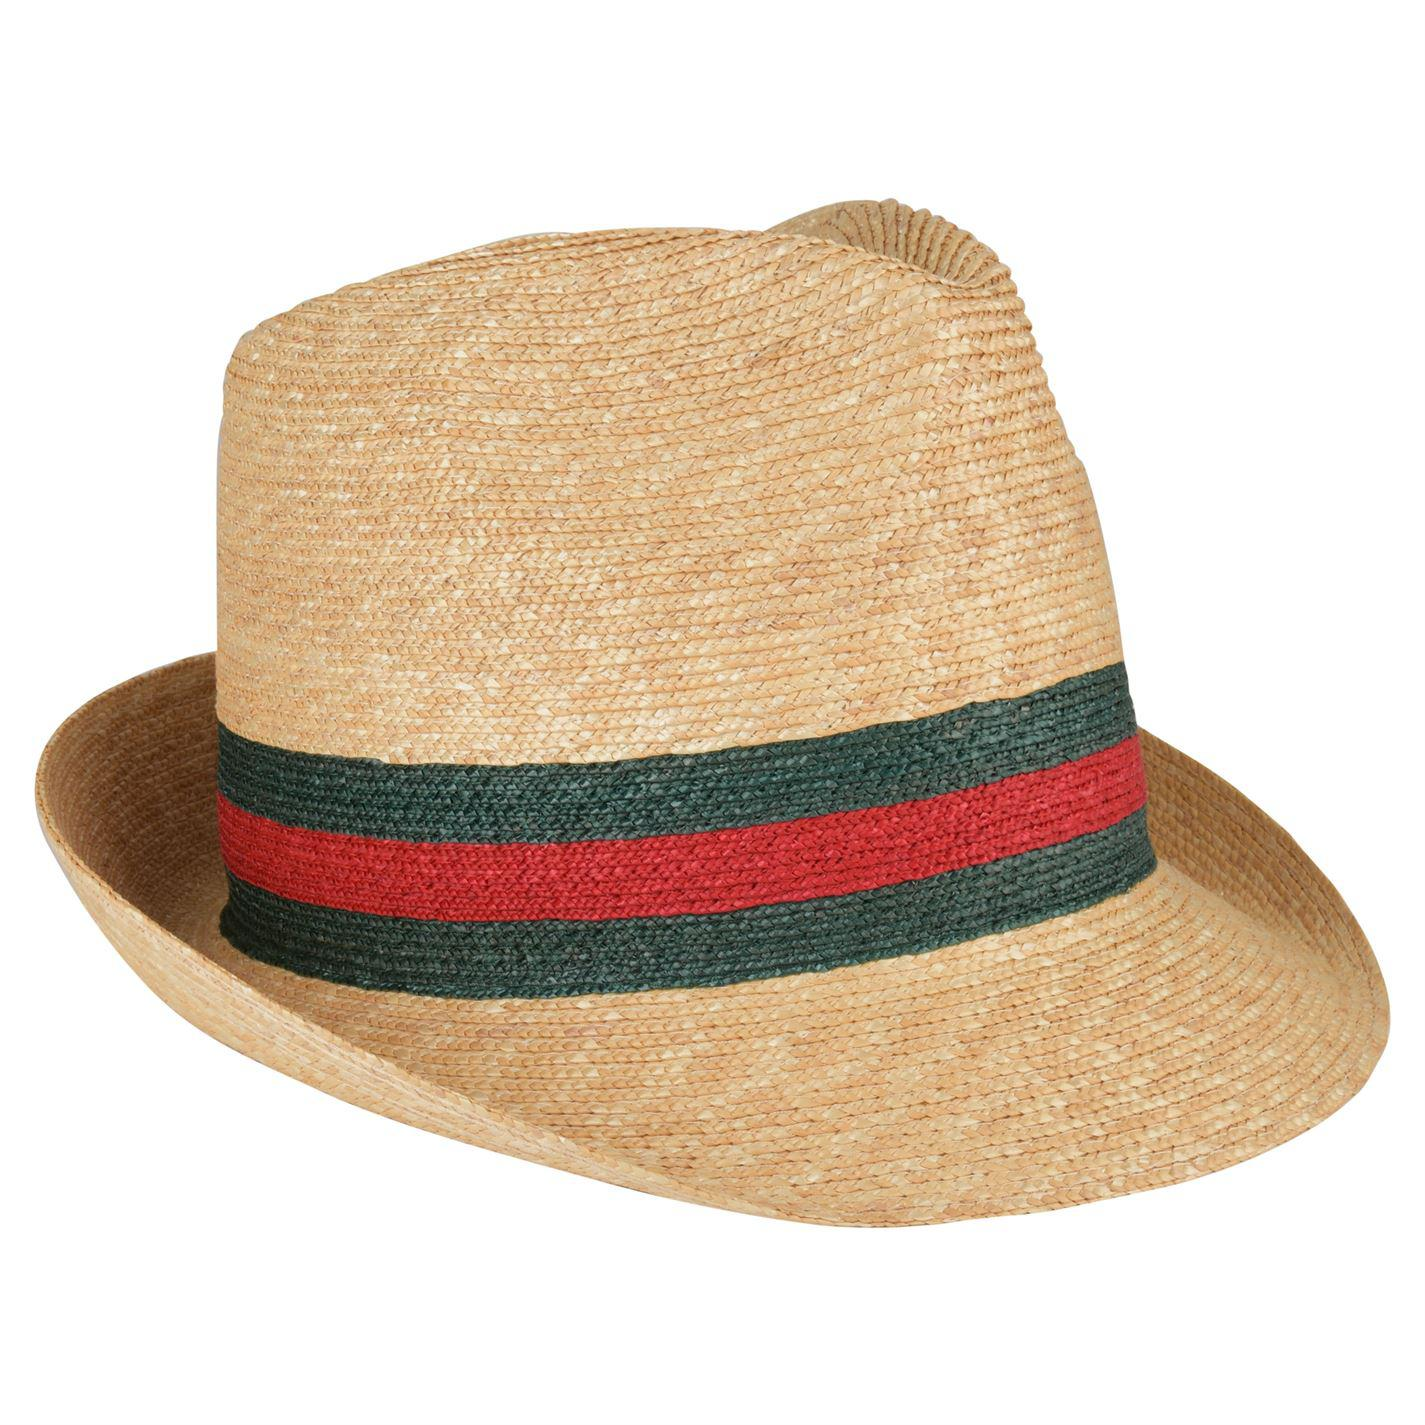 2bb47aa3dc76d Lyst - Gucci Tribly Straw Hat in Natural